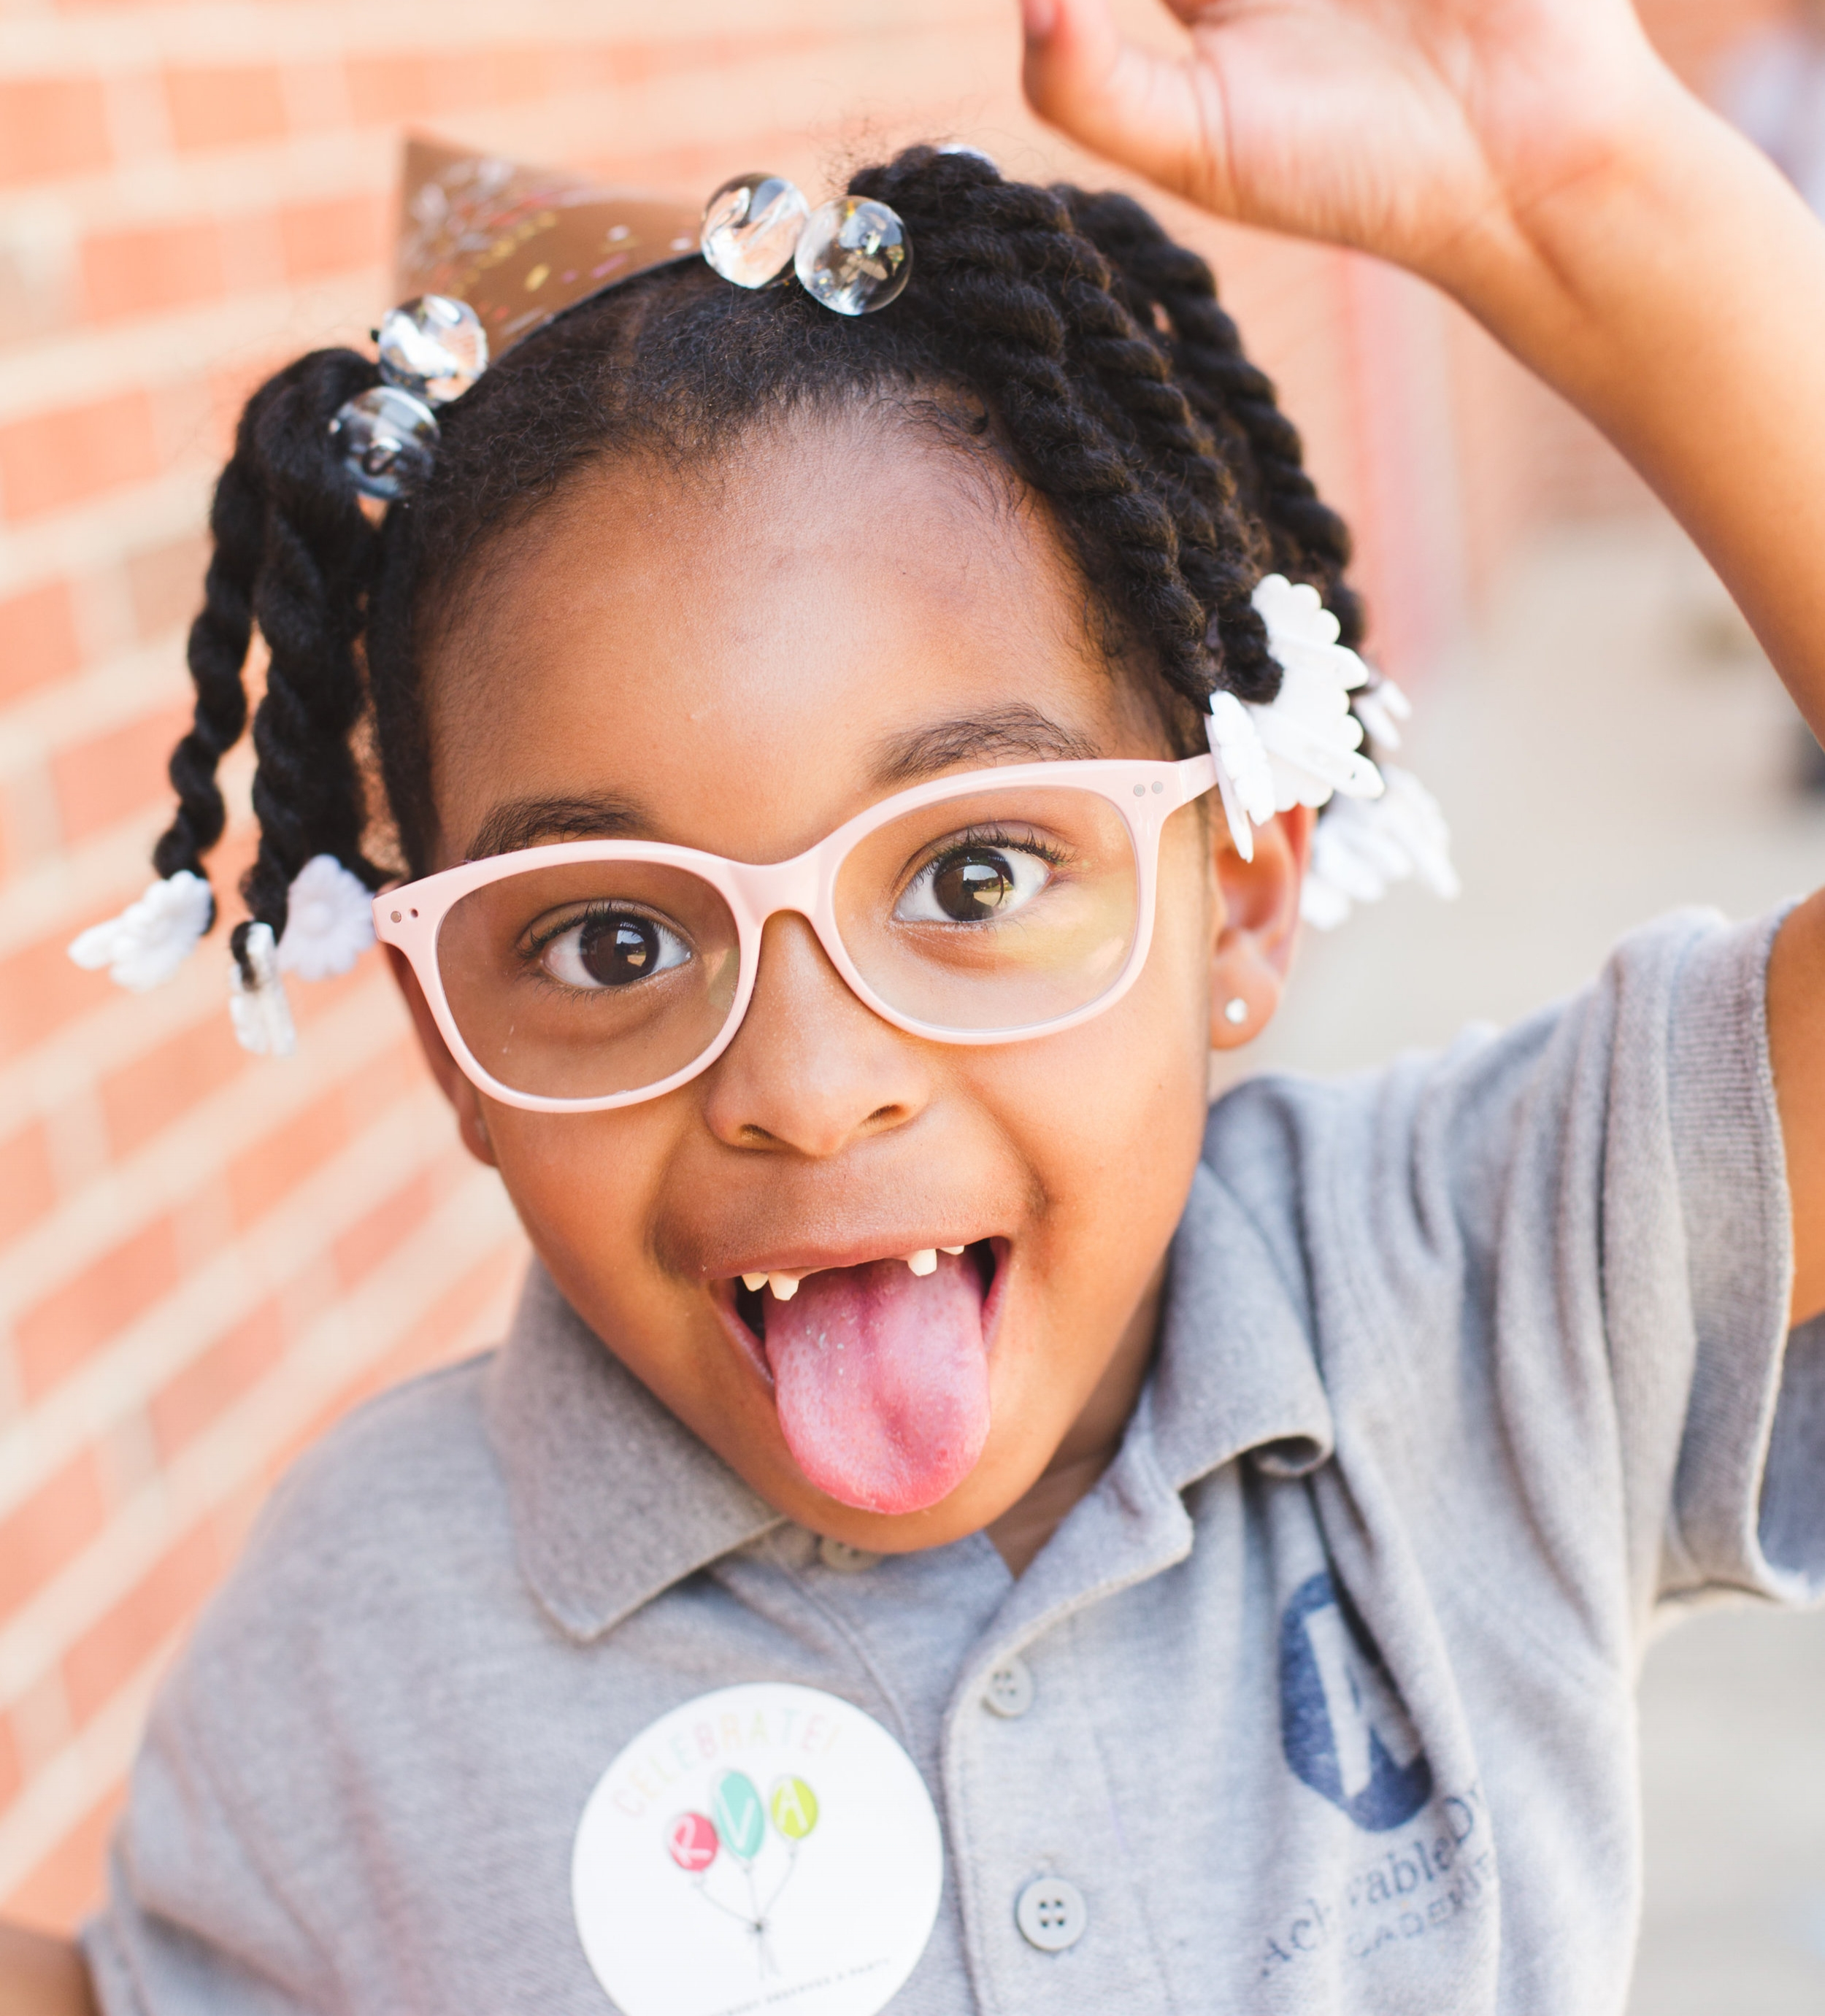 Our Mission - Celebrate! RVA is a non-profit organization with a simple mission: to give disadvantaged children a memorable birthday celebration in a safe and fun environment.Learn More